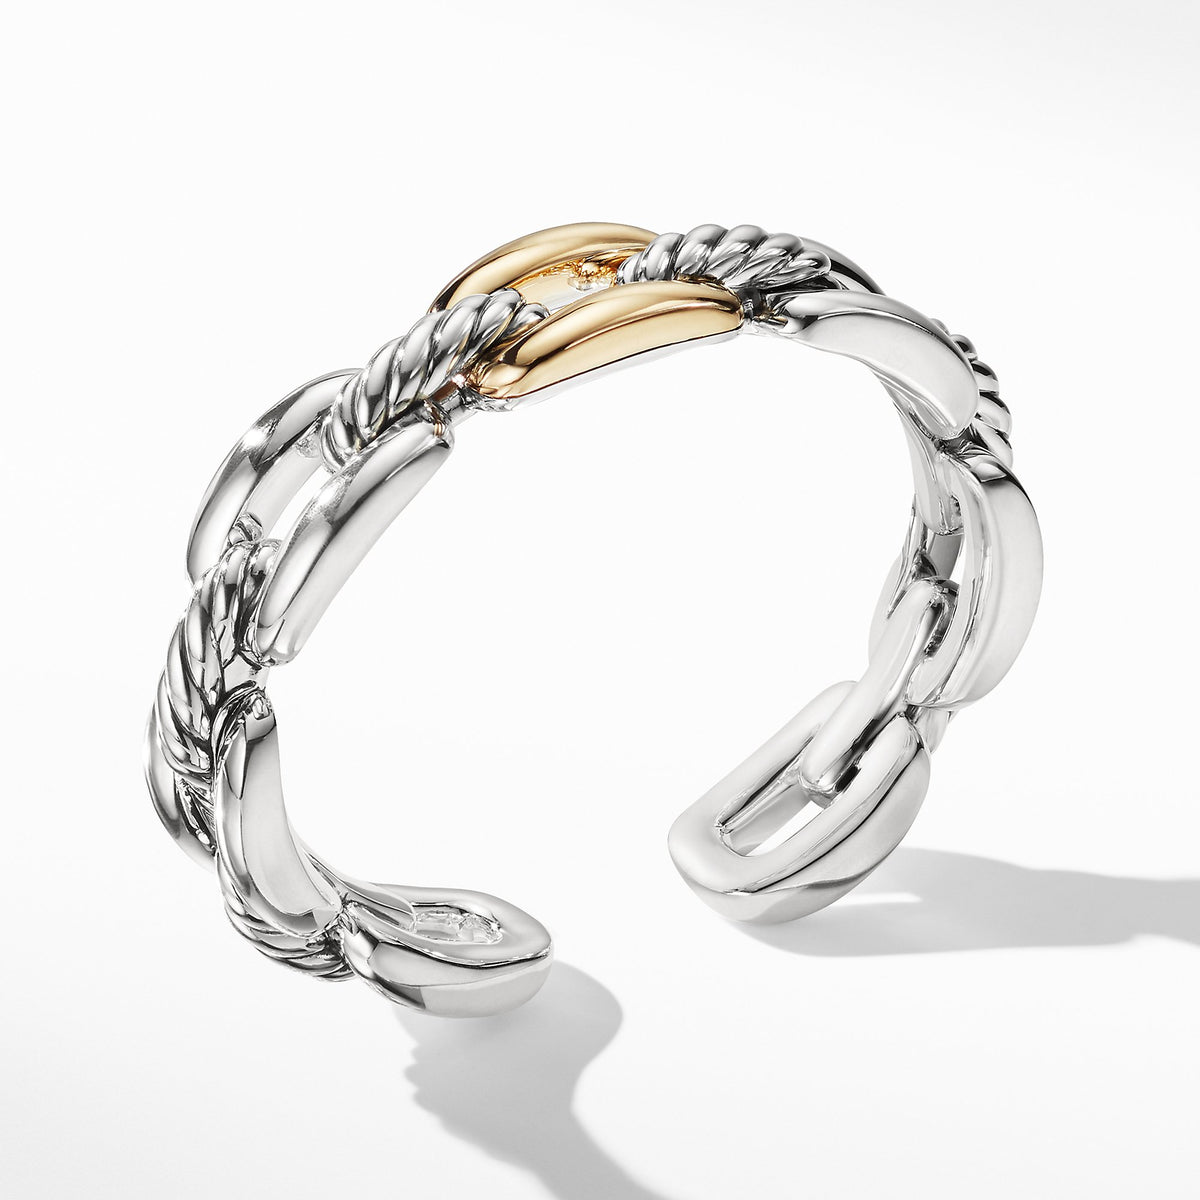 Wellesley Link Single Stack Bracelet with 18K Gold